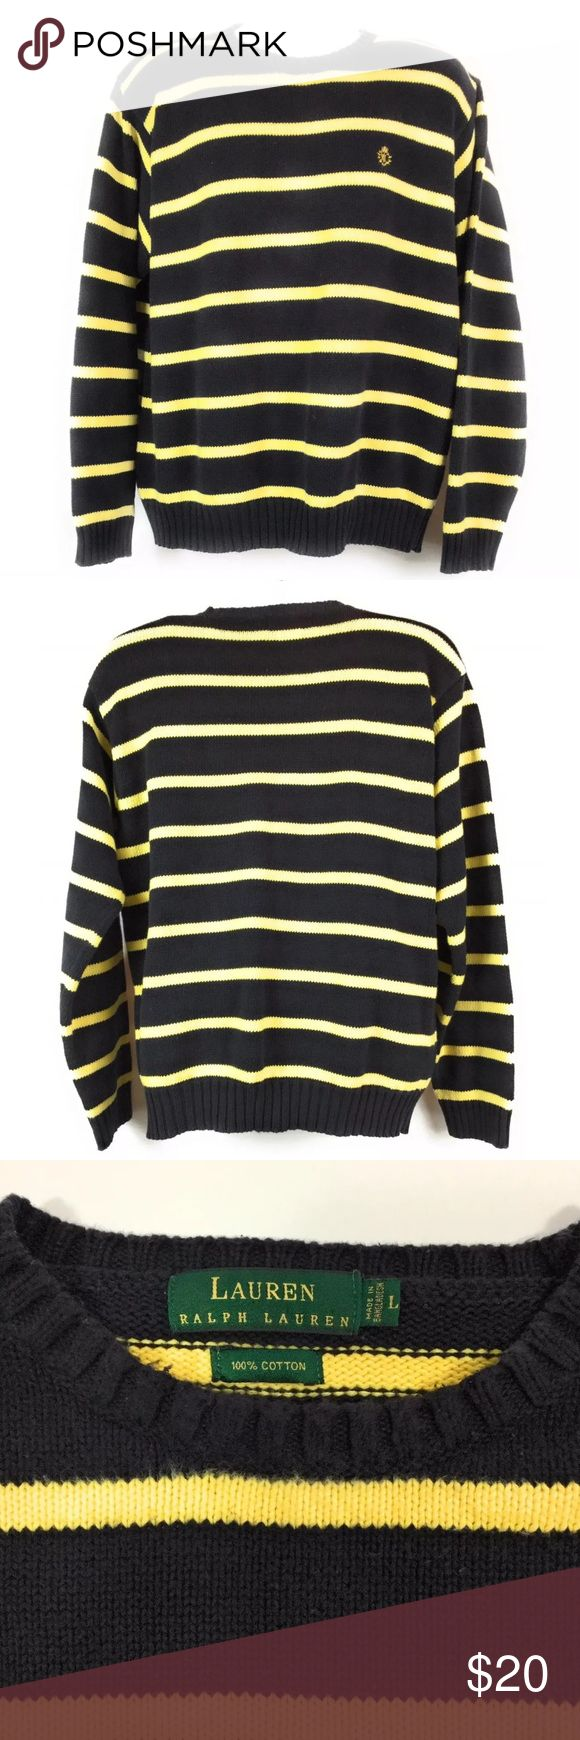 """Ralph Lauren Polo Sweater Striped Black Yellow L Lauren Ralph Lauren Men's Crew Neck Pullover Sweater. Size Large. Cotton with Crest on front. Black and Yellow Striped. This is a heavy Knit Sweater. Gently worn with no rips or stains. Measures:   Underarm to Underarm 25""""  Center Back Length 27""""  Please see pictures for details. Lauren Ralph Lauren Sweaters Crewneck"""